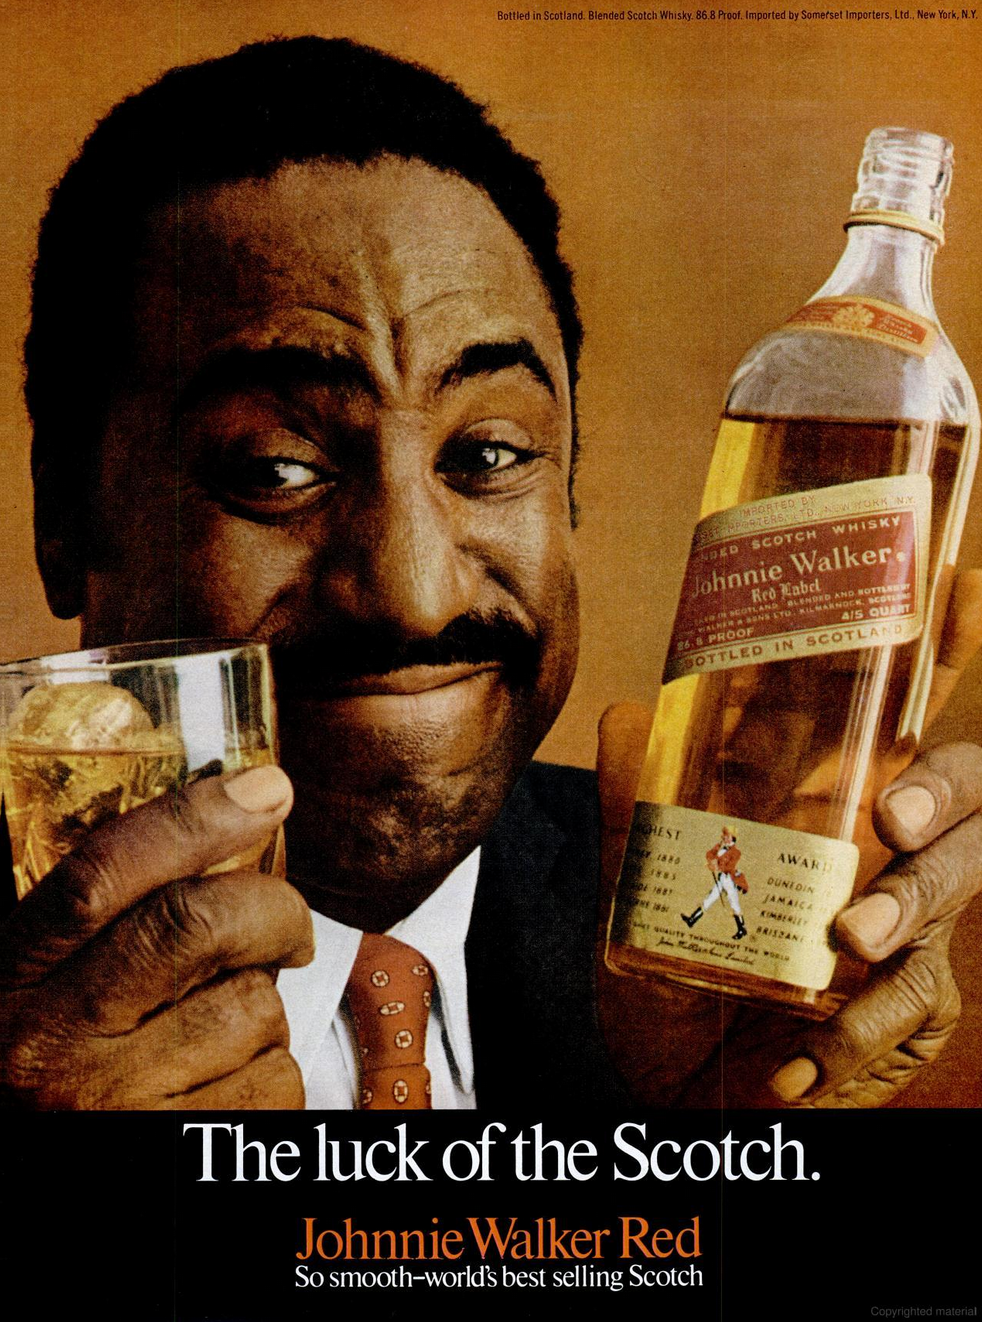 Black man holding a glass and bottle of Johnnie Walker scotch